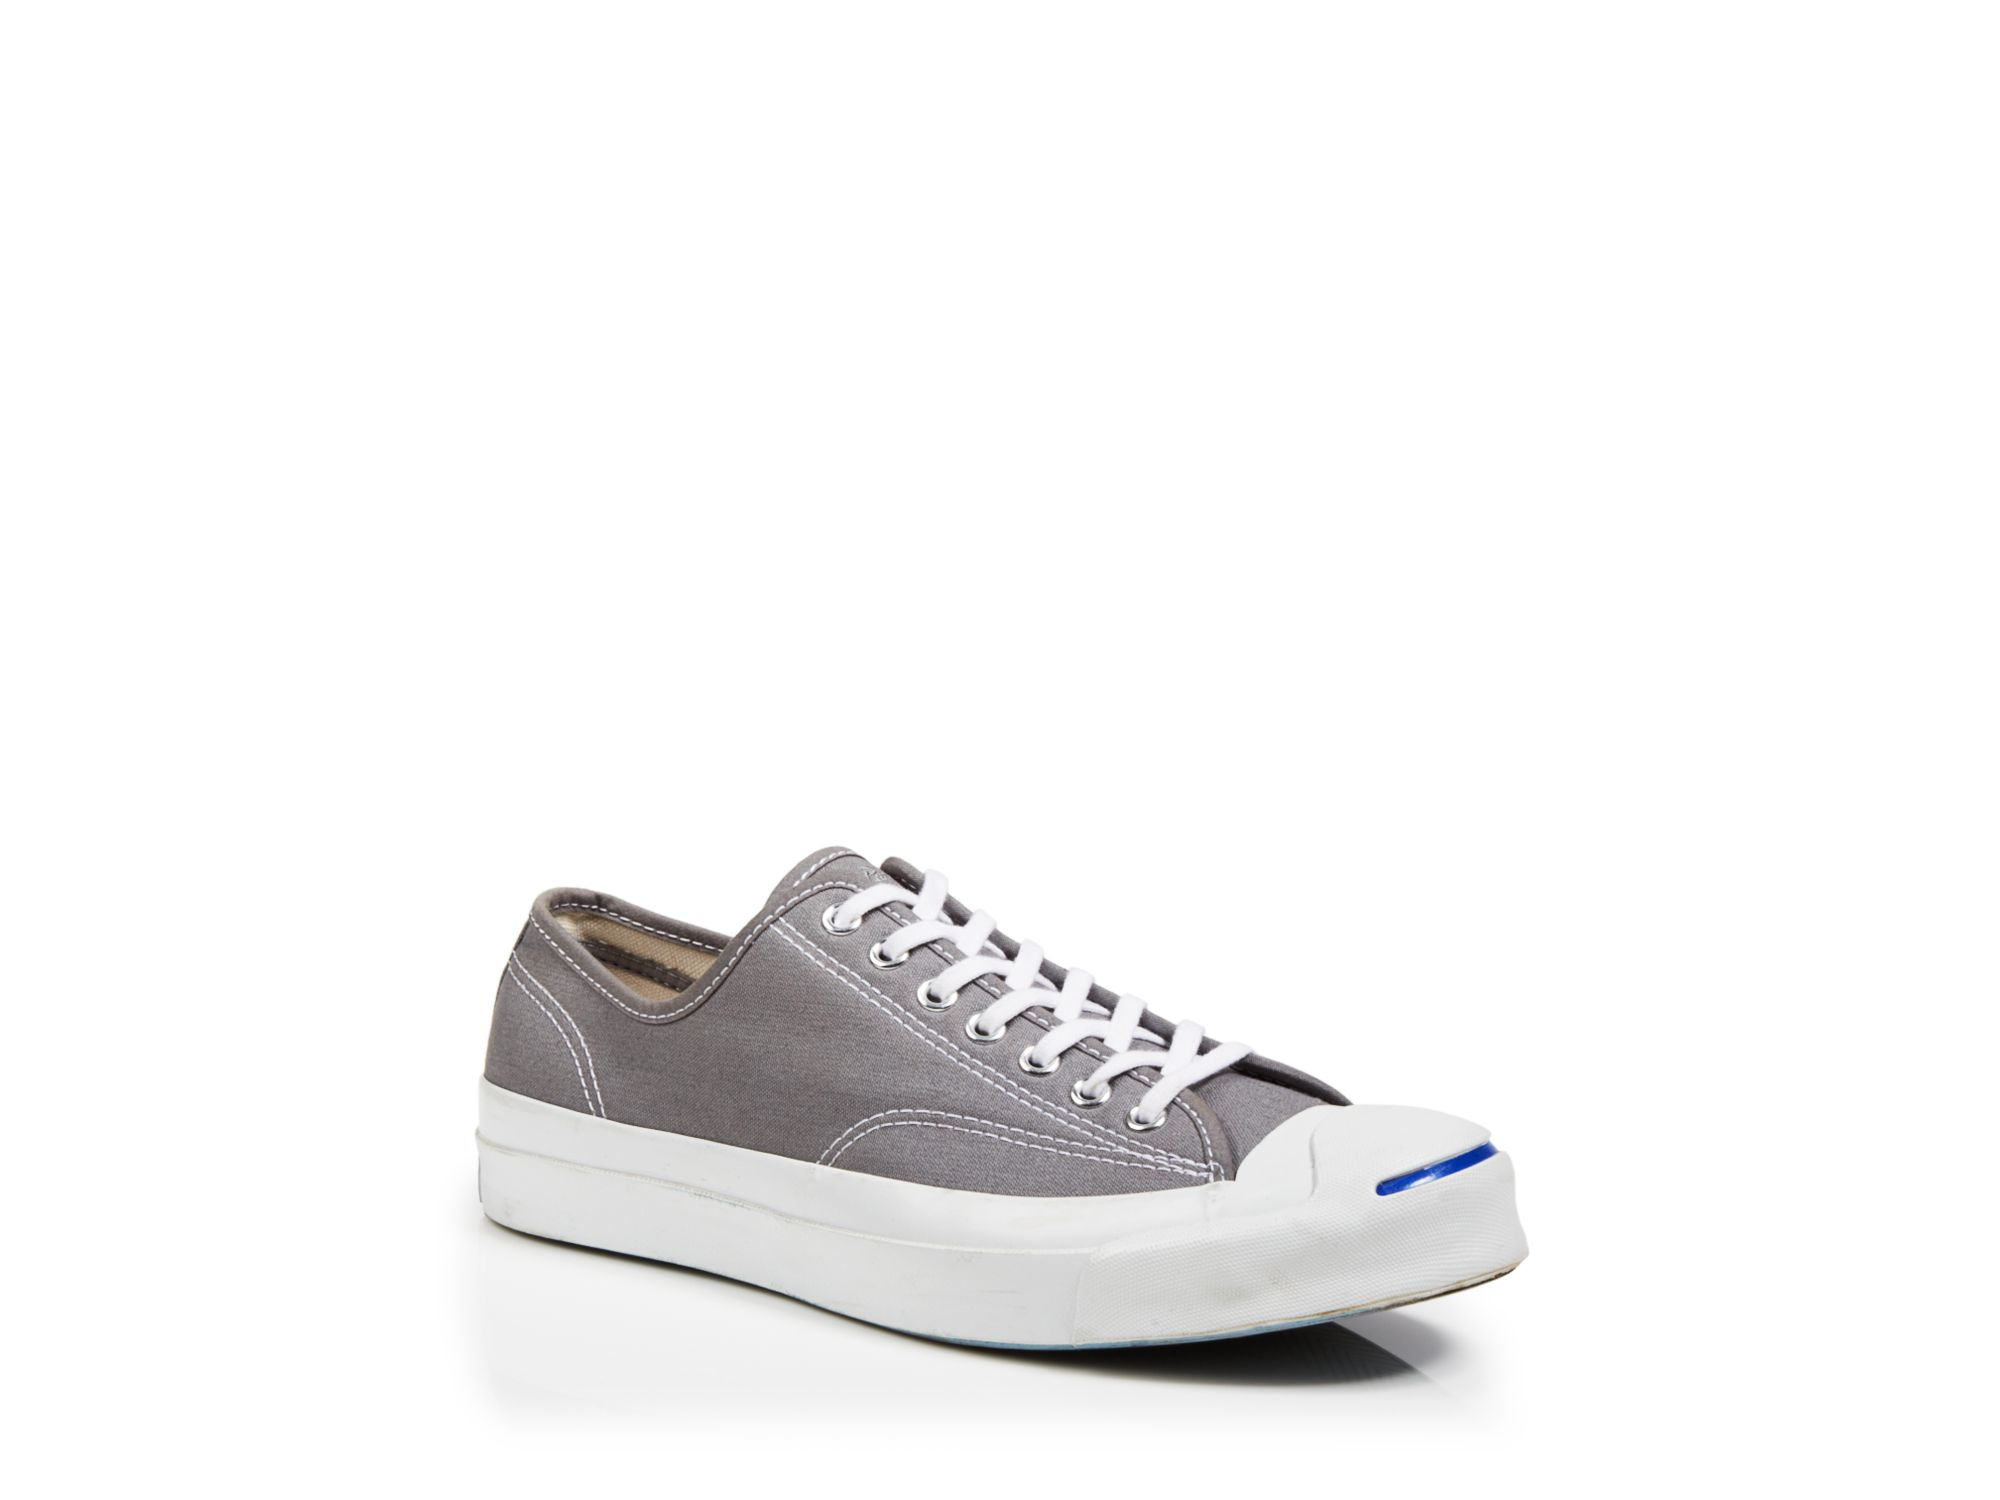 fd3cab62079 Lyst - Converse Jack Purcell Signature Canvas Sneakers in Gray for Men